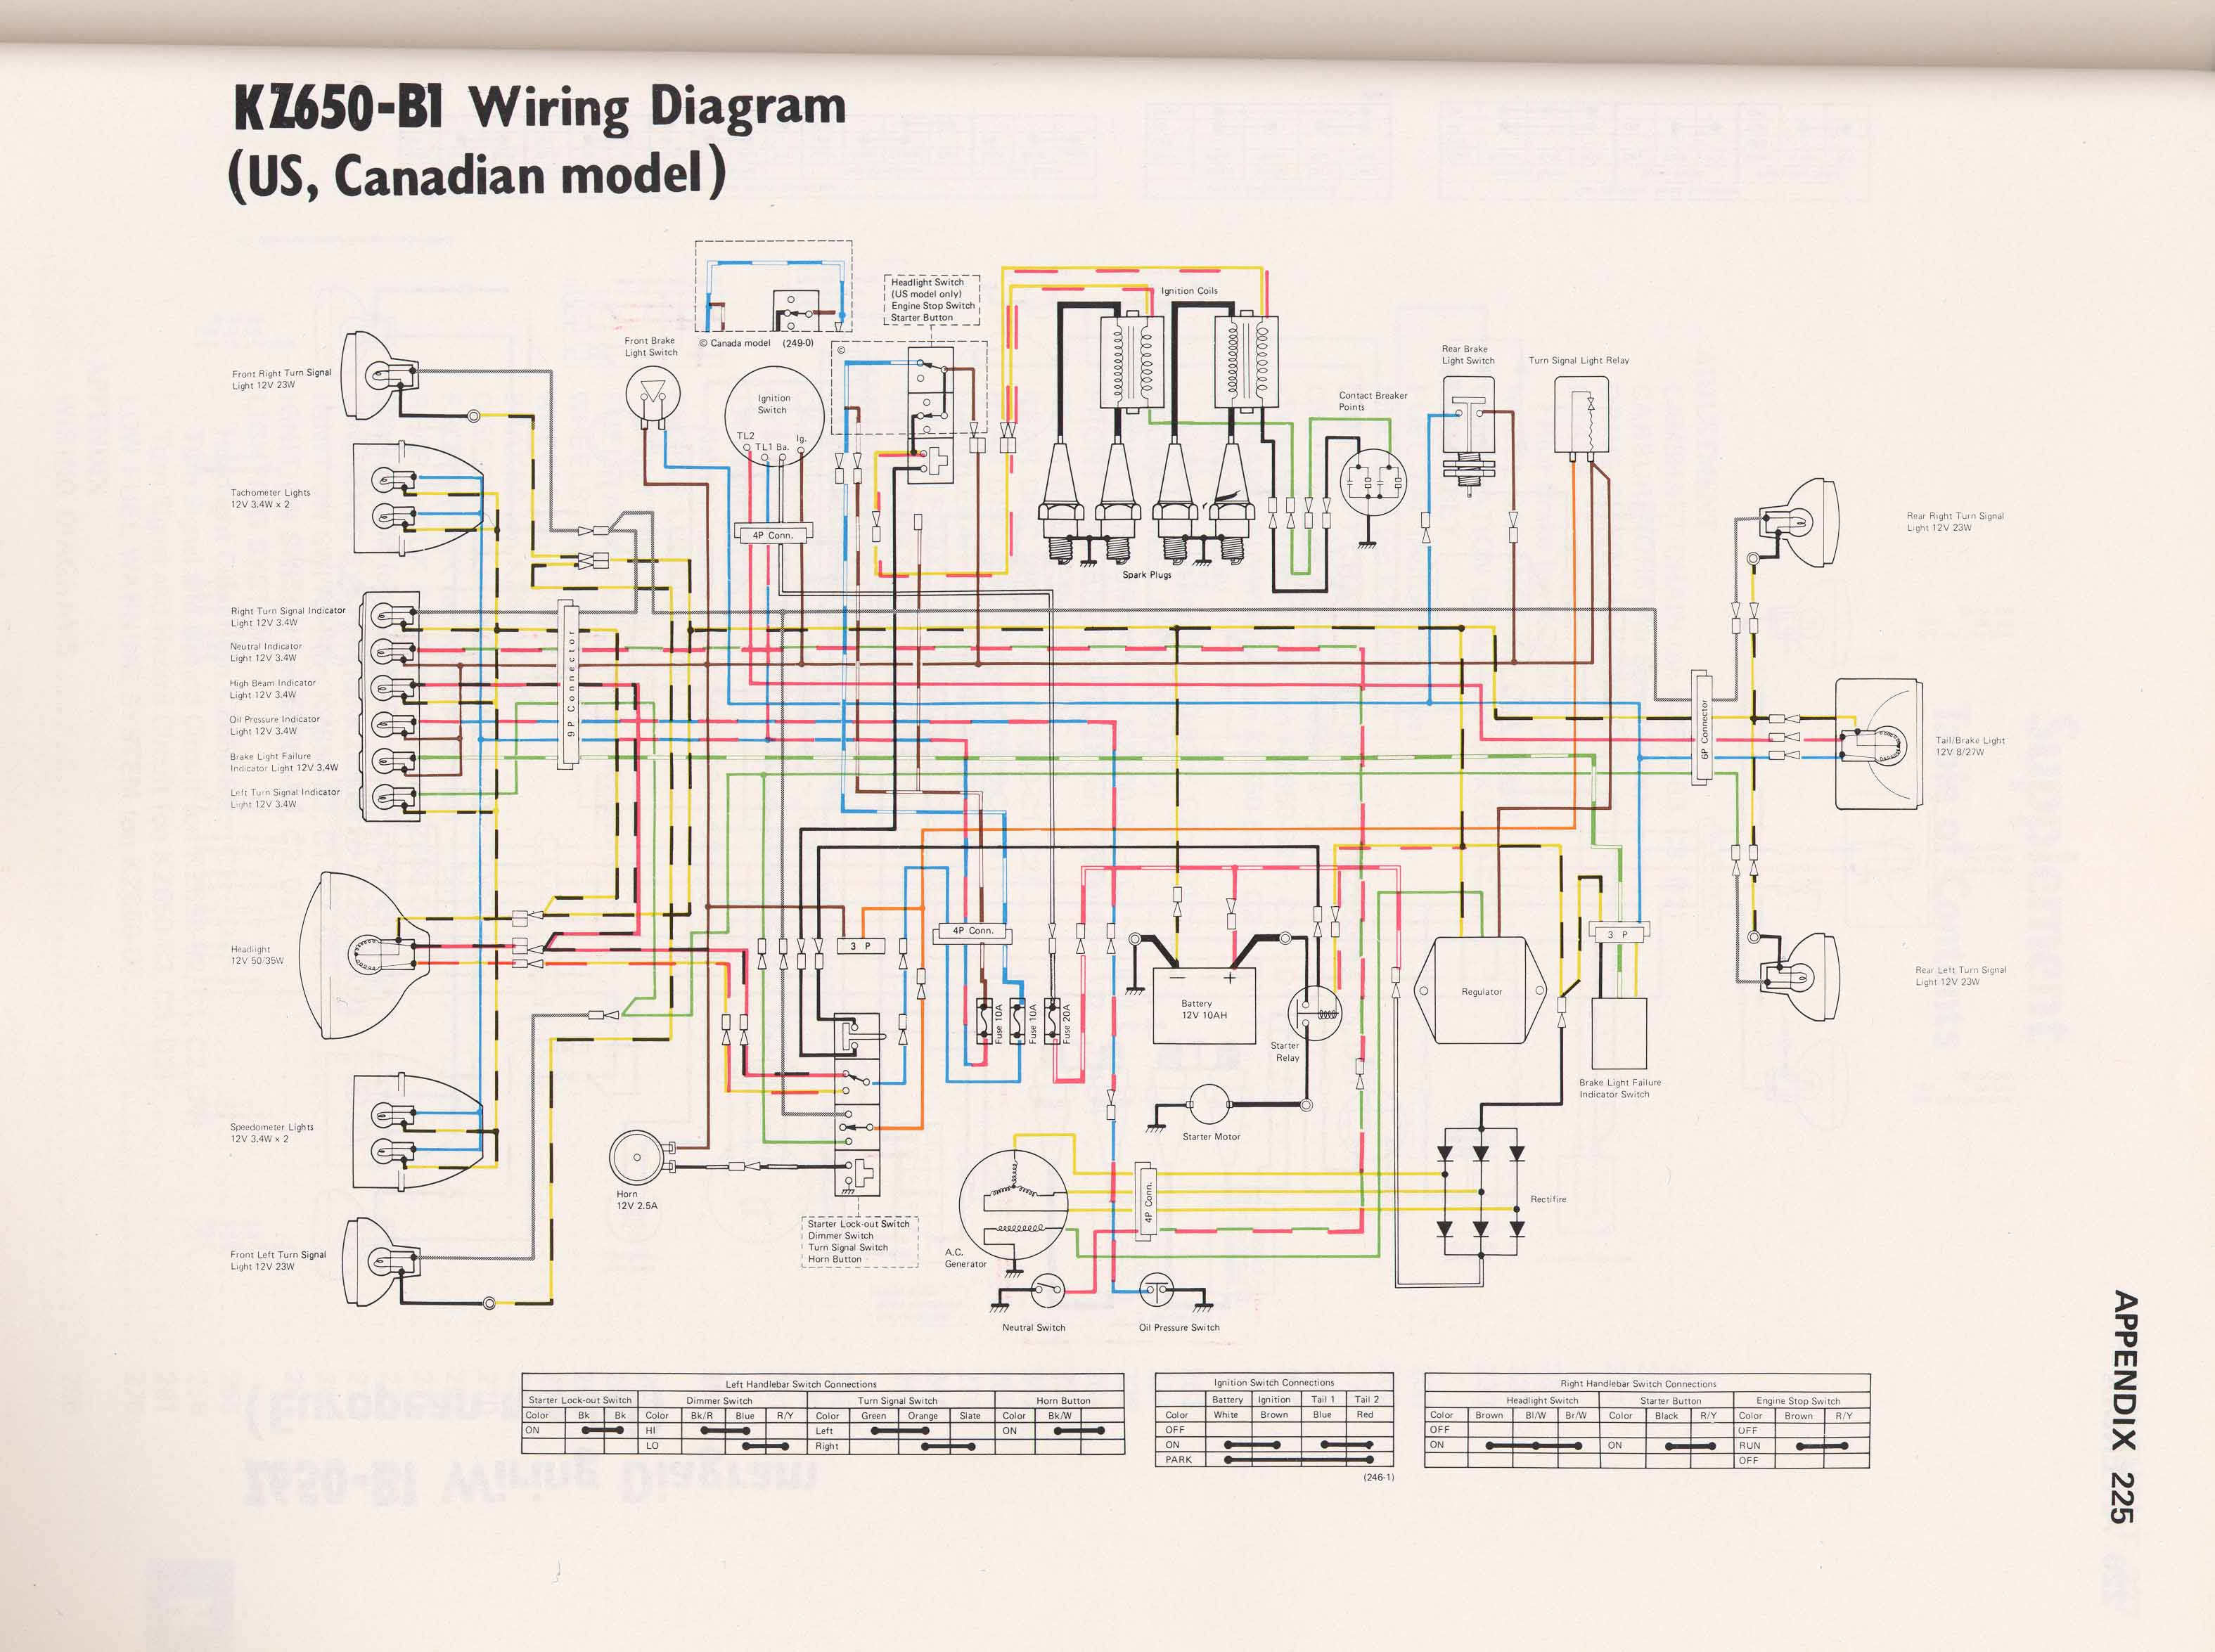 Kawasaki Z 750 Wiring Diagram List Of Schematic Circuit Euro Trailer Kz650 Info Diagrams Rh